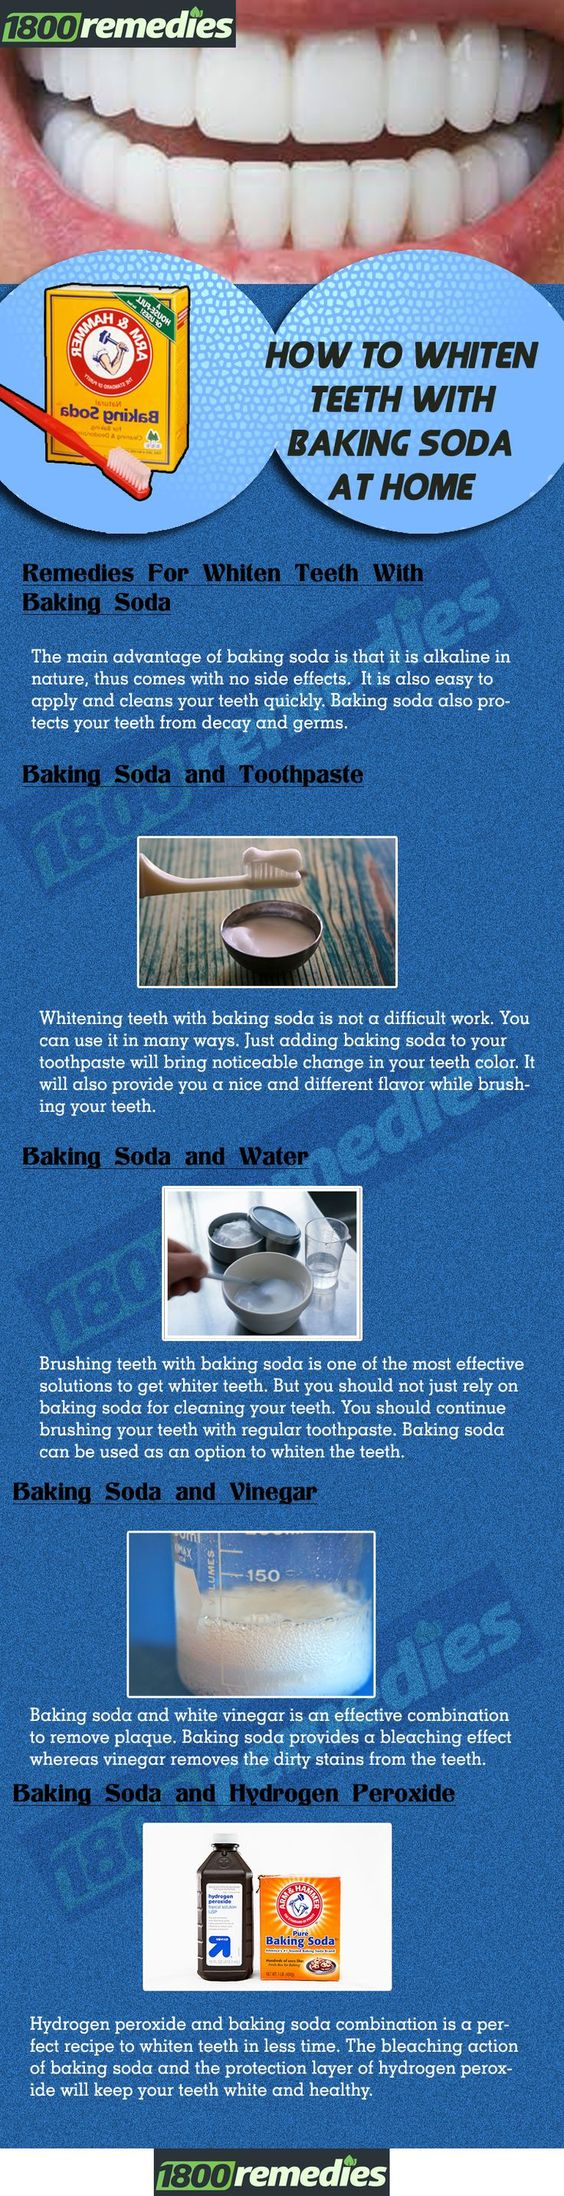 Whitening teeth with baking soda is not a difficult work. You can use it in many ways. Just adding baking soda to your toothpaste will bring noticeable change in your teeth color. It will also provide you a nice and different flavor while brushing your teeth.